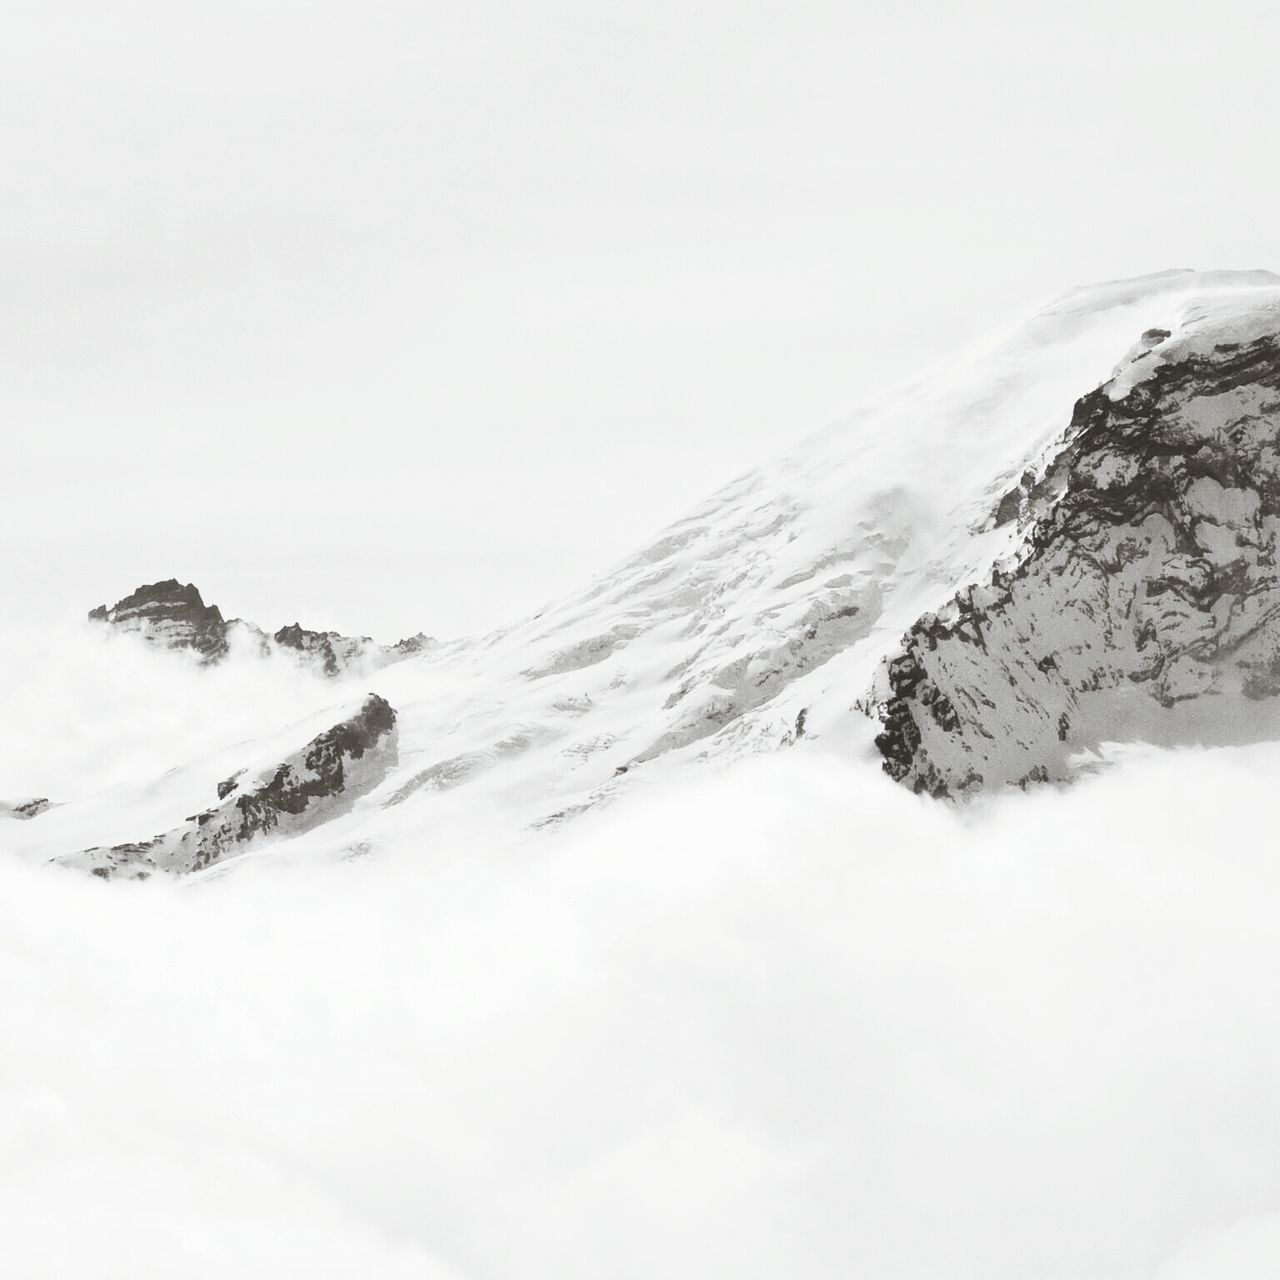 View of snow covered landscape against clear sky